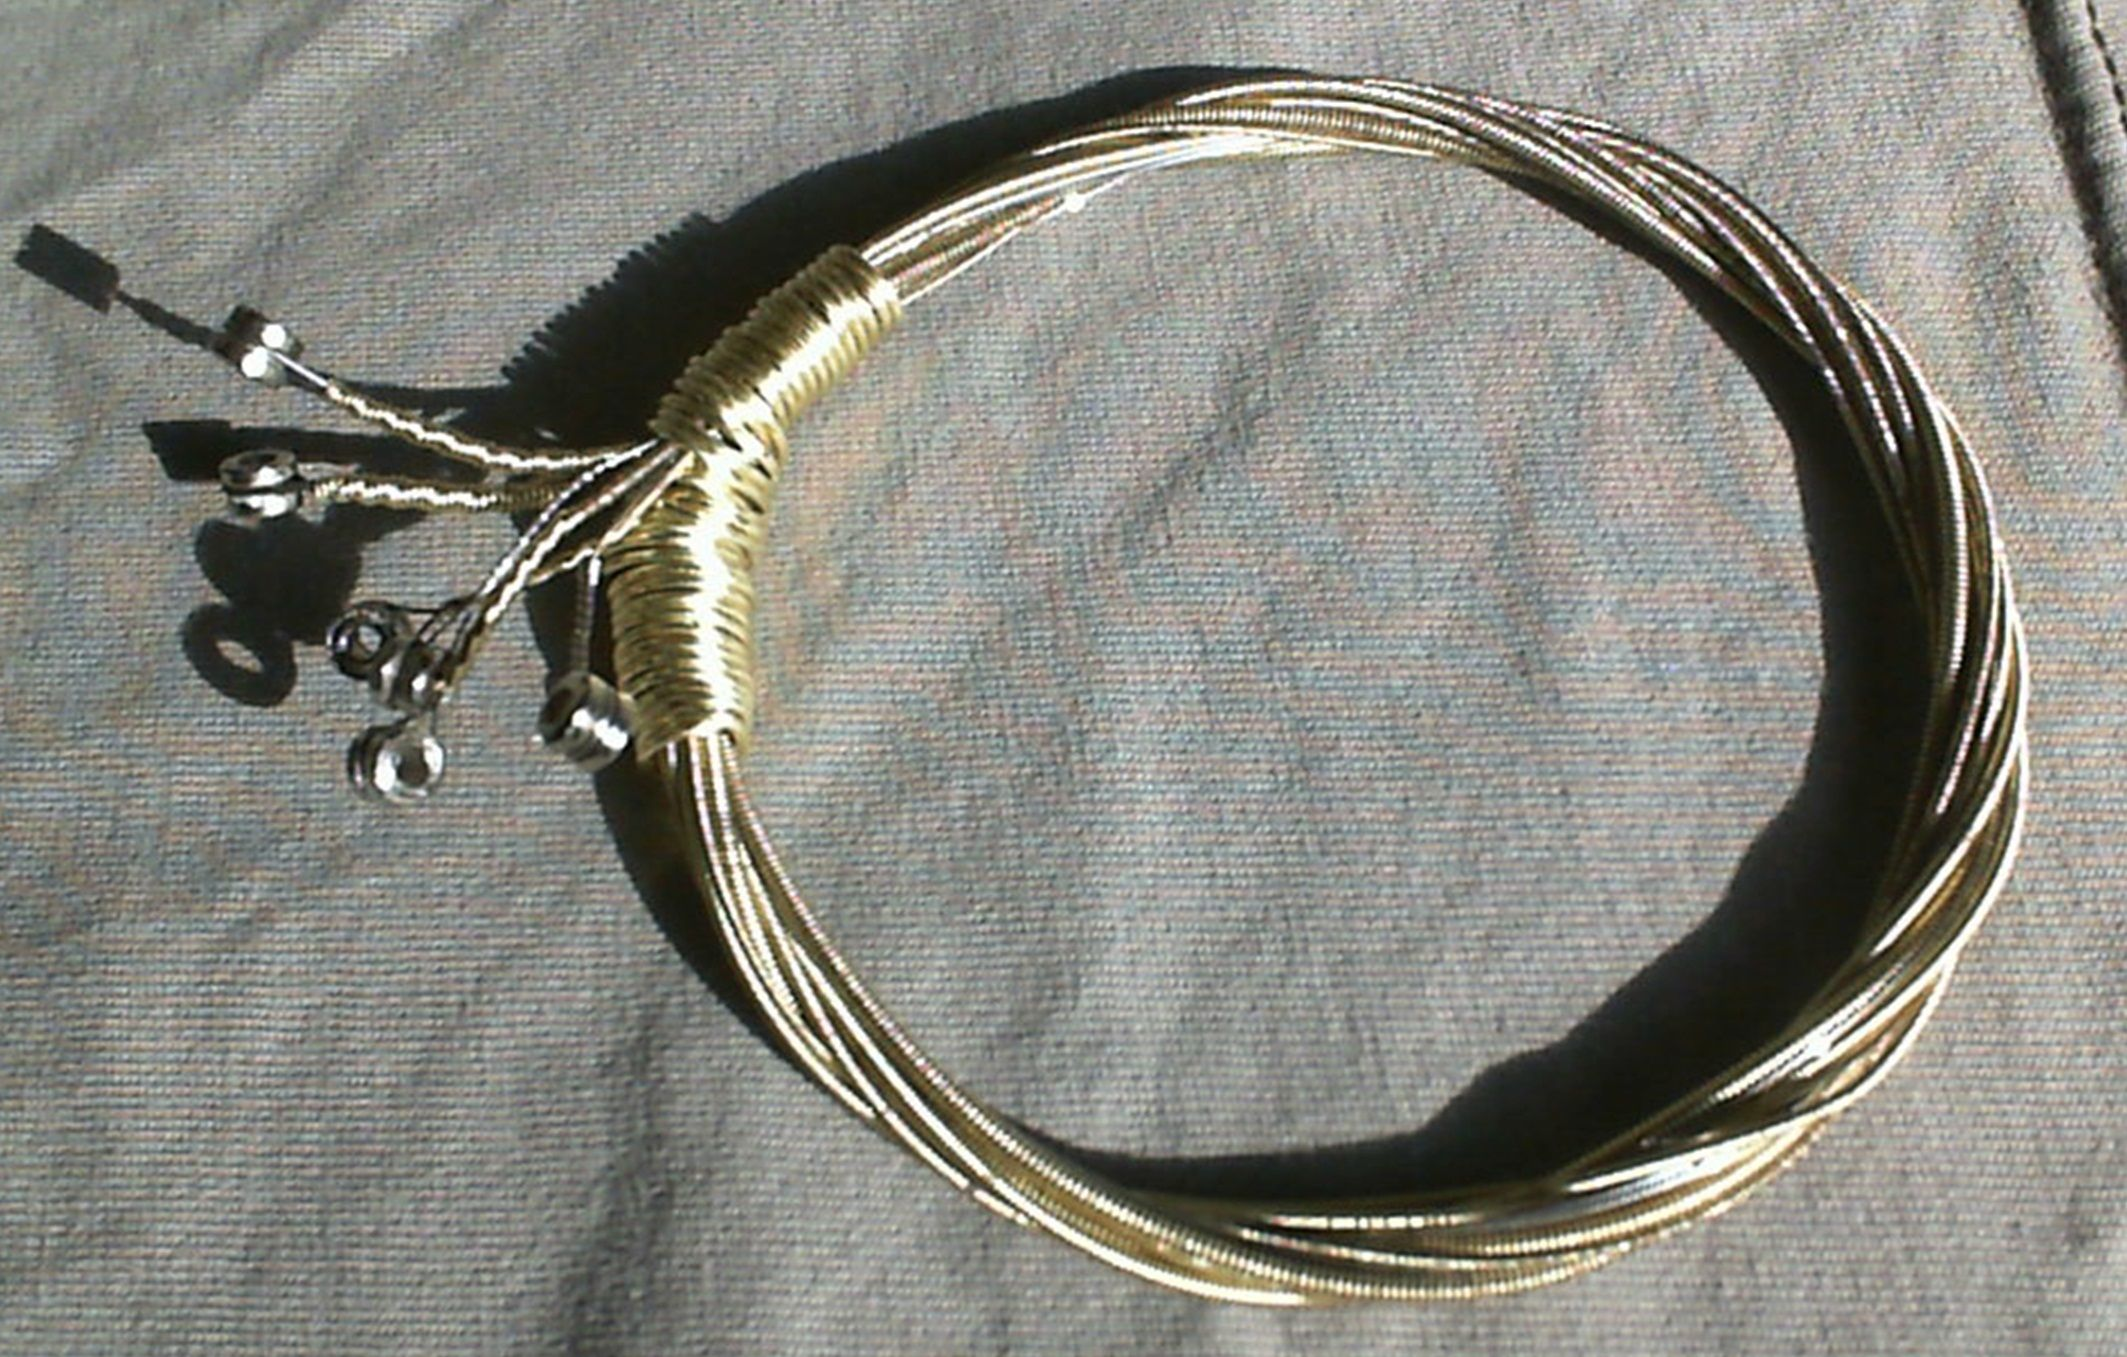 Final Old Guitar strings Bracelet. P_Gala